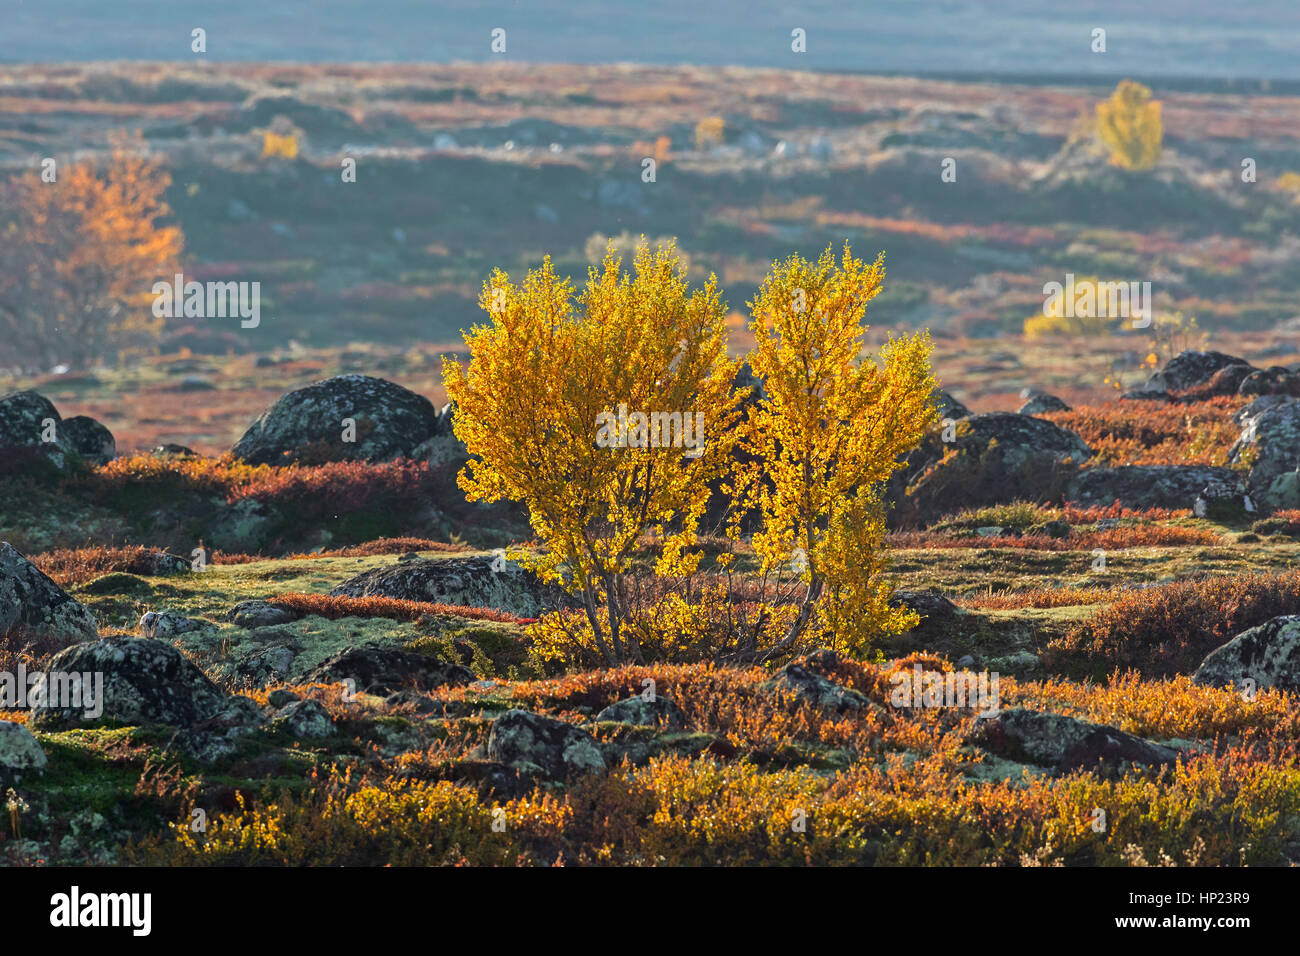 European white birches / downy birch / moor birch (Betula pubescens / Betula alba) on the tundra in autumn, Rondane - Stock Image